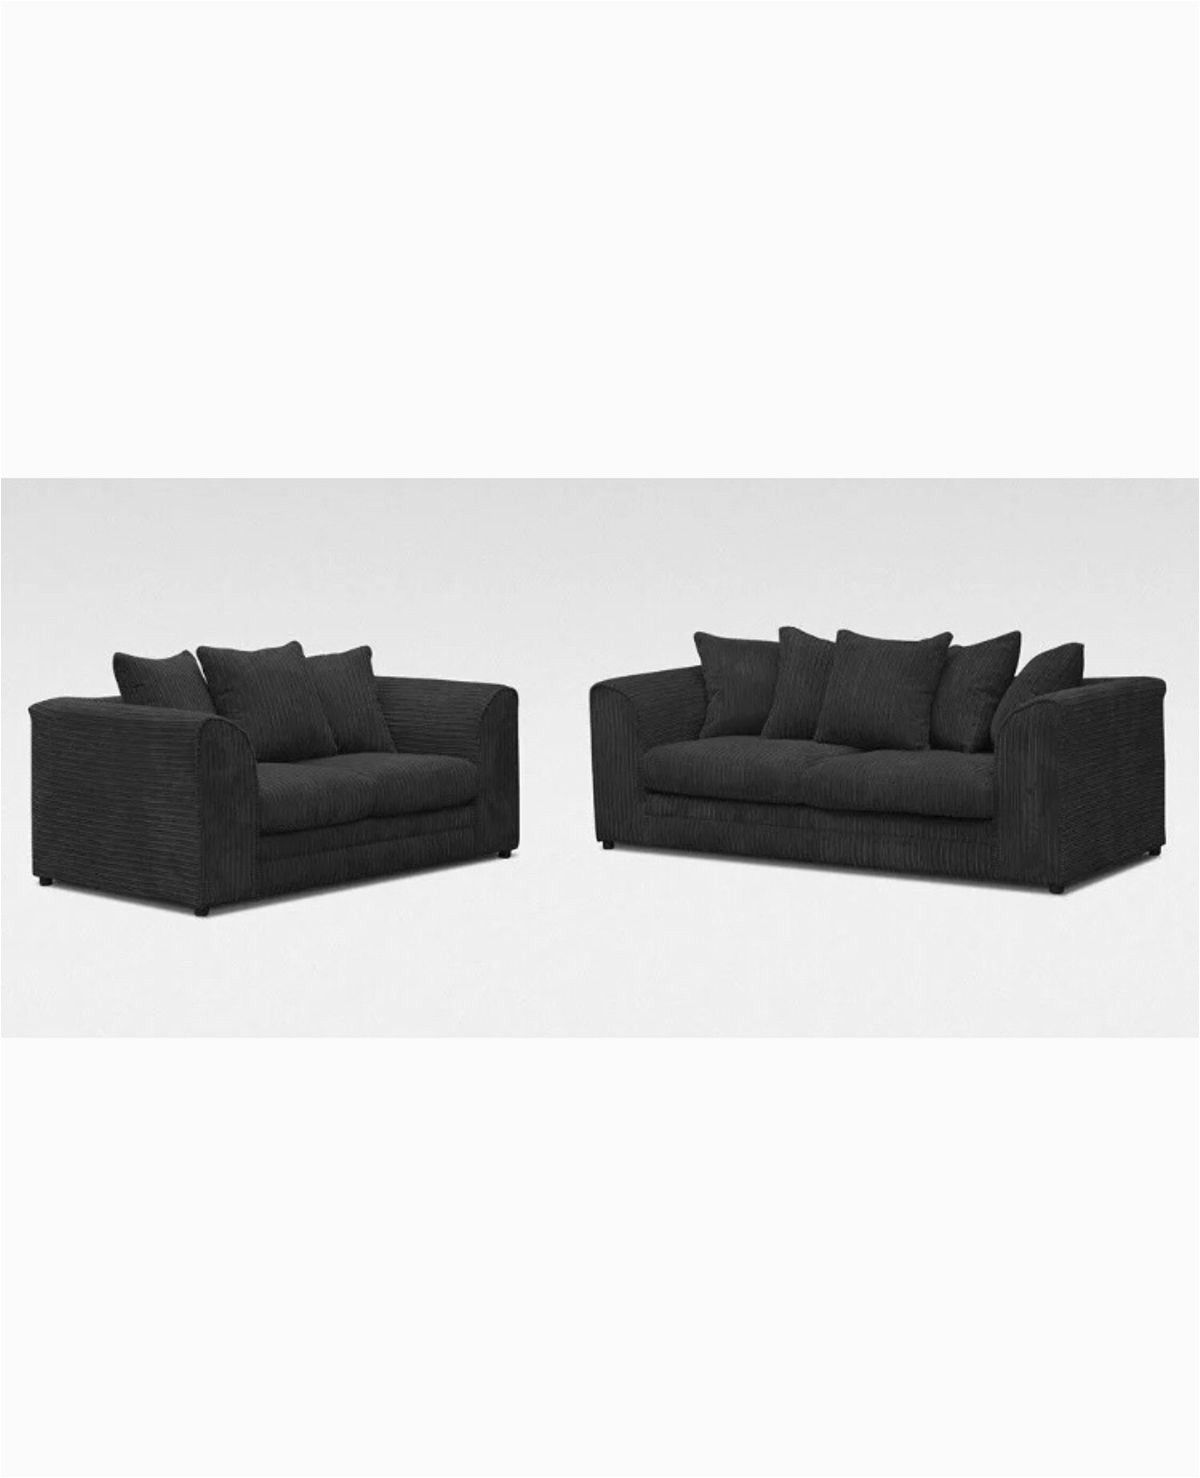 Black Fabric Couches Sofas In 2020 Couch Fabric Couch Sofa Couch